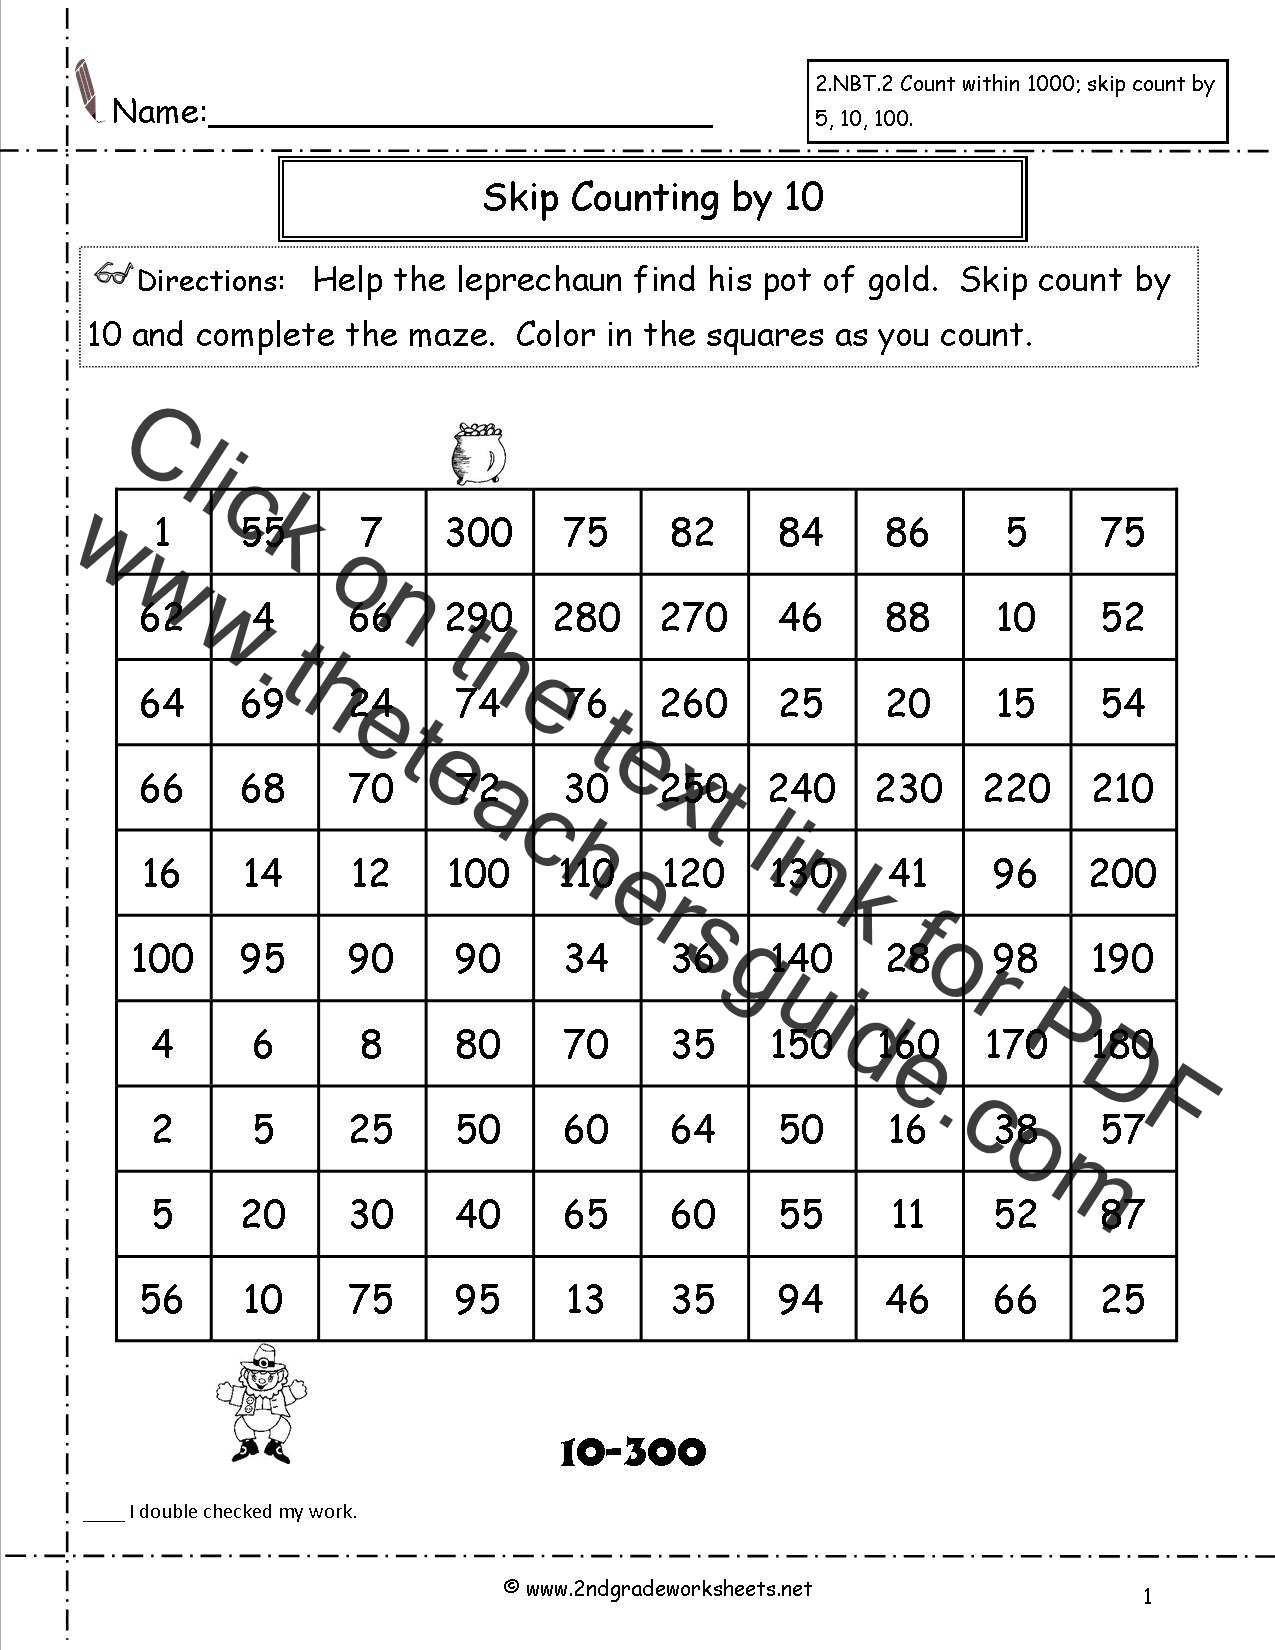 Free Skip Counting Worksheets – Counting by 5s Worksheet